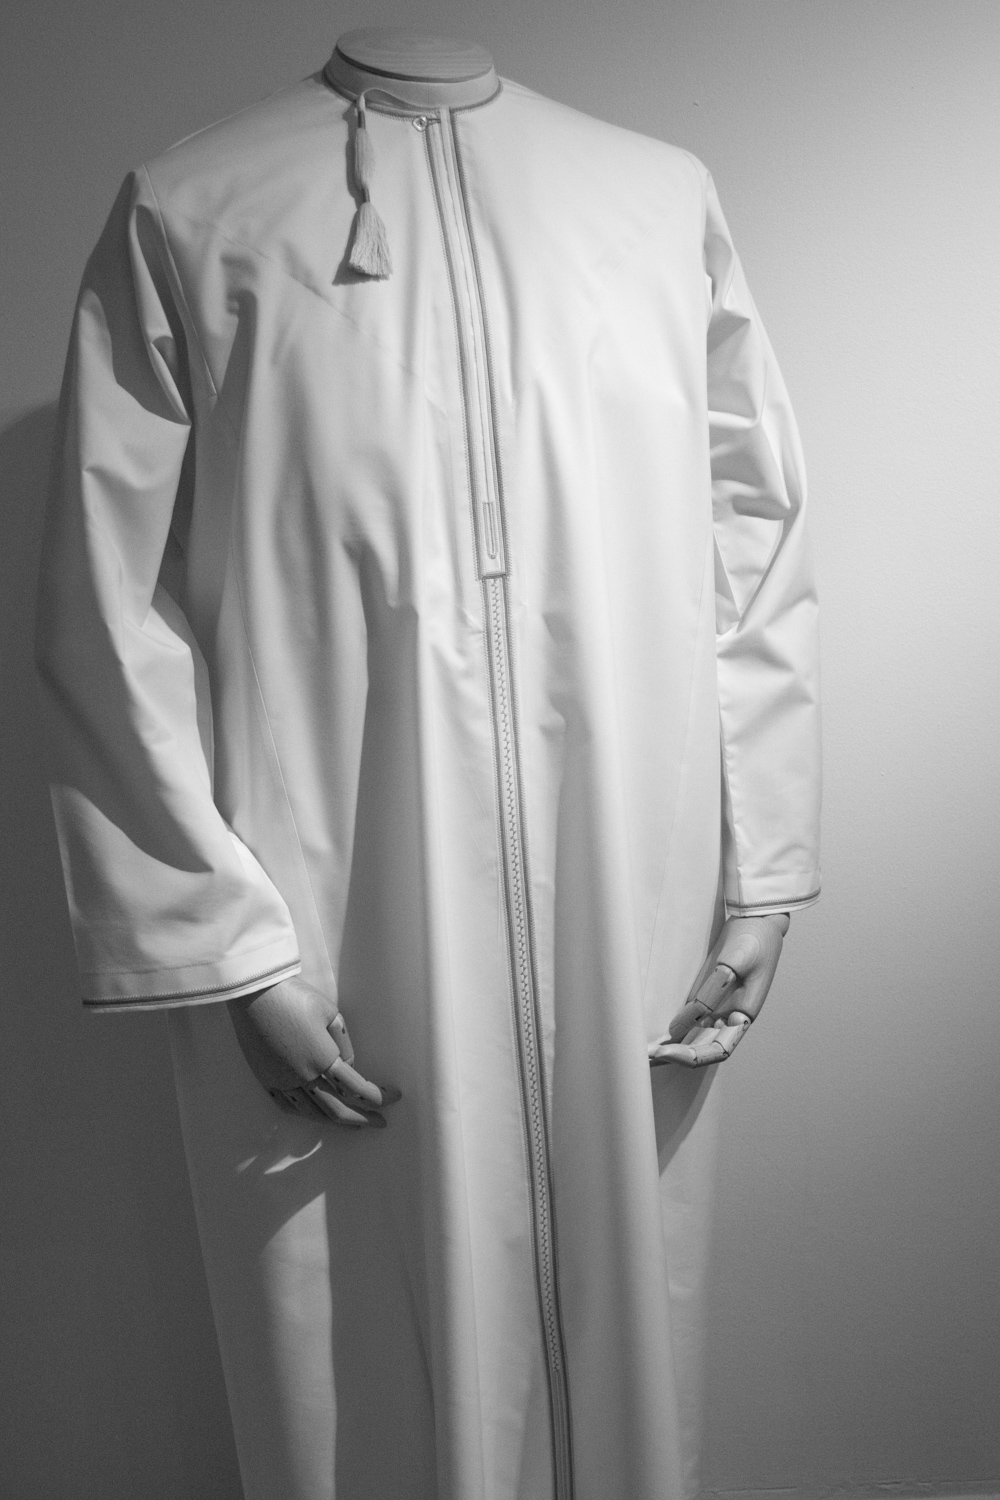 The style of dishdasha worn in Oman.